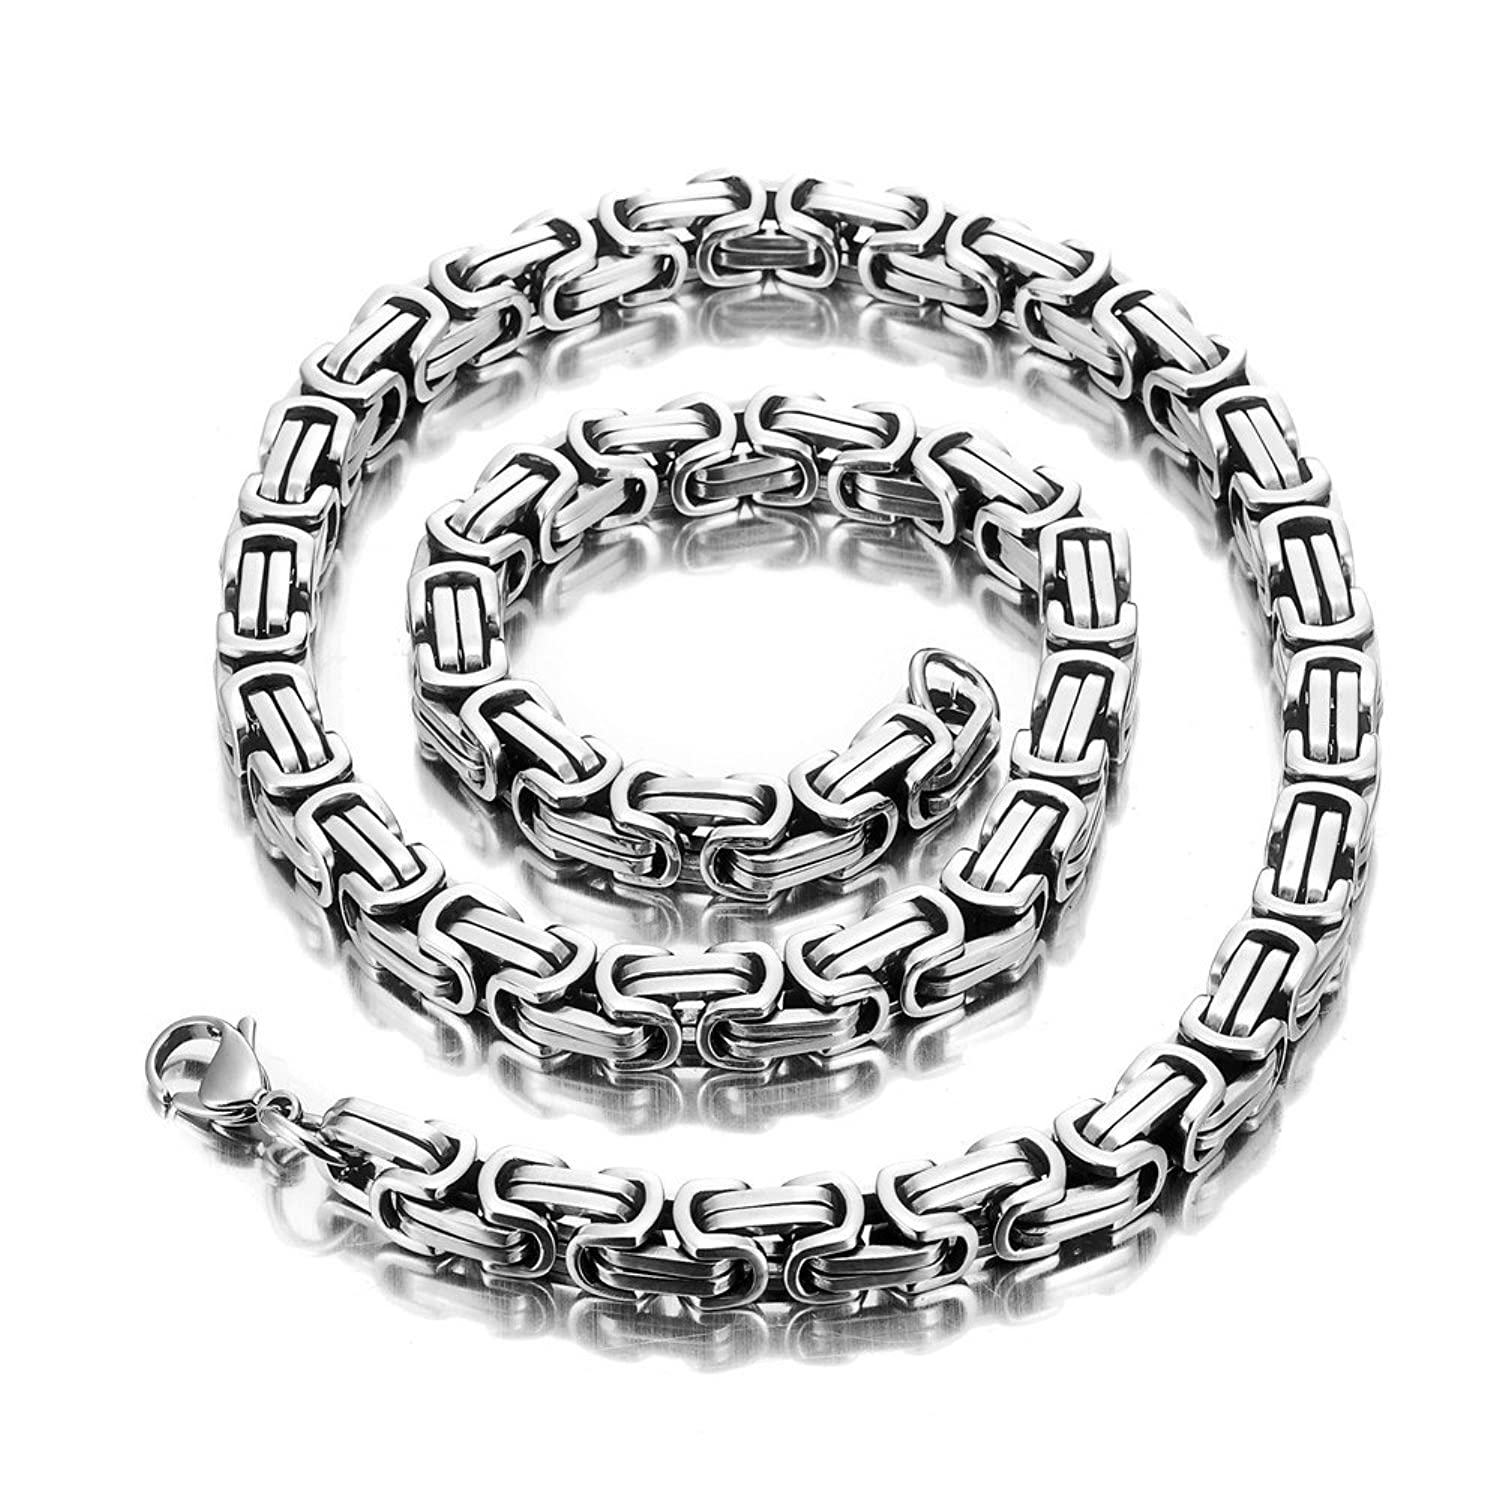 Impressive Mechanic Style Men\'s Necklace Stainless Steel Silver ...